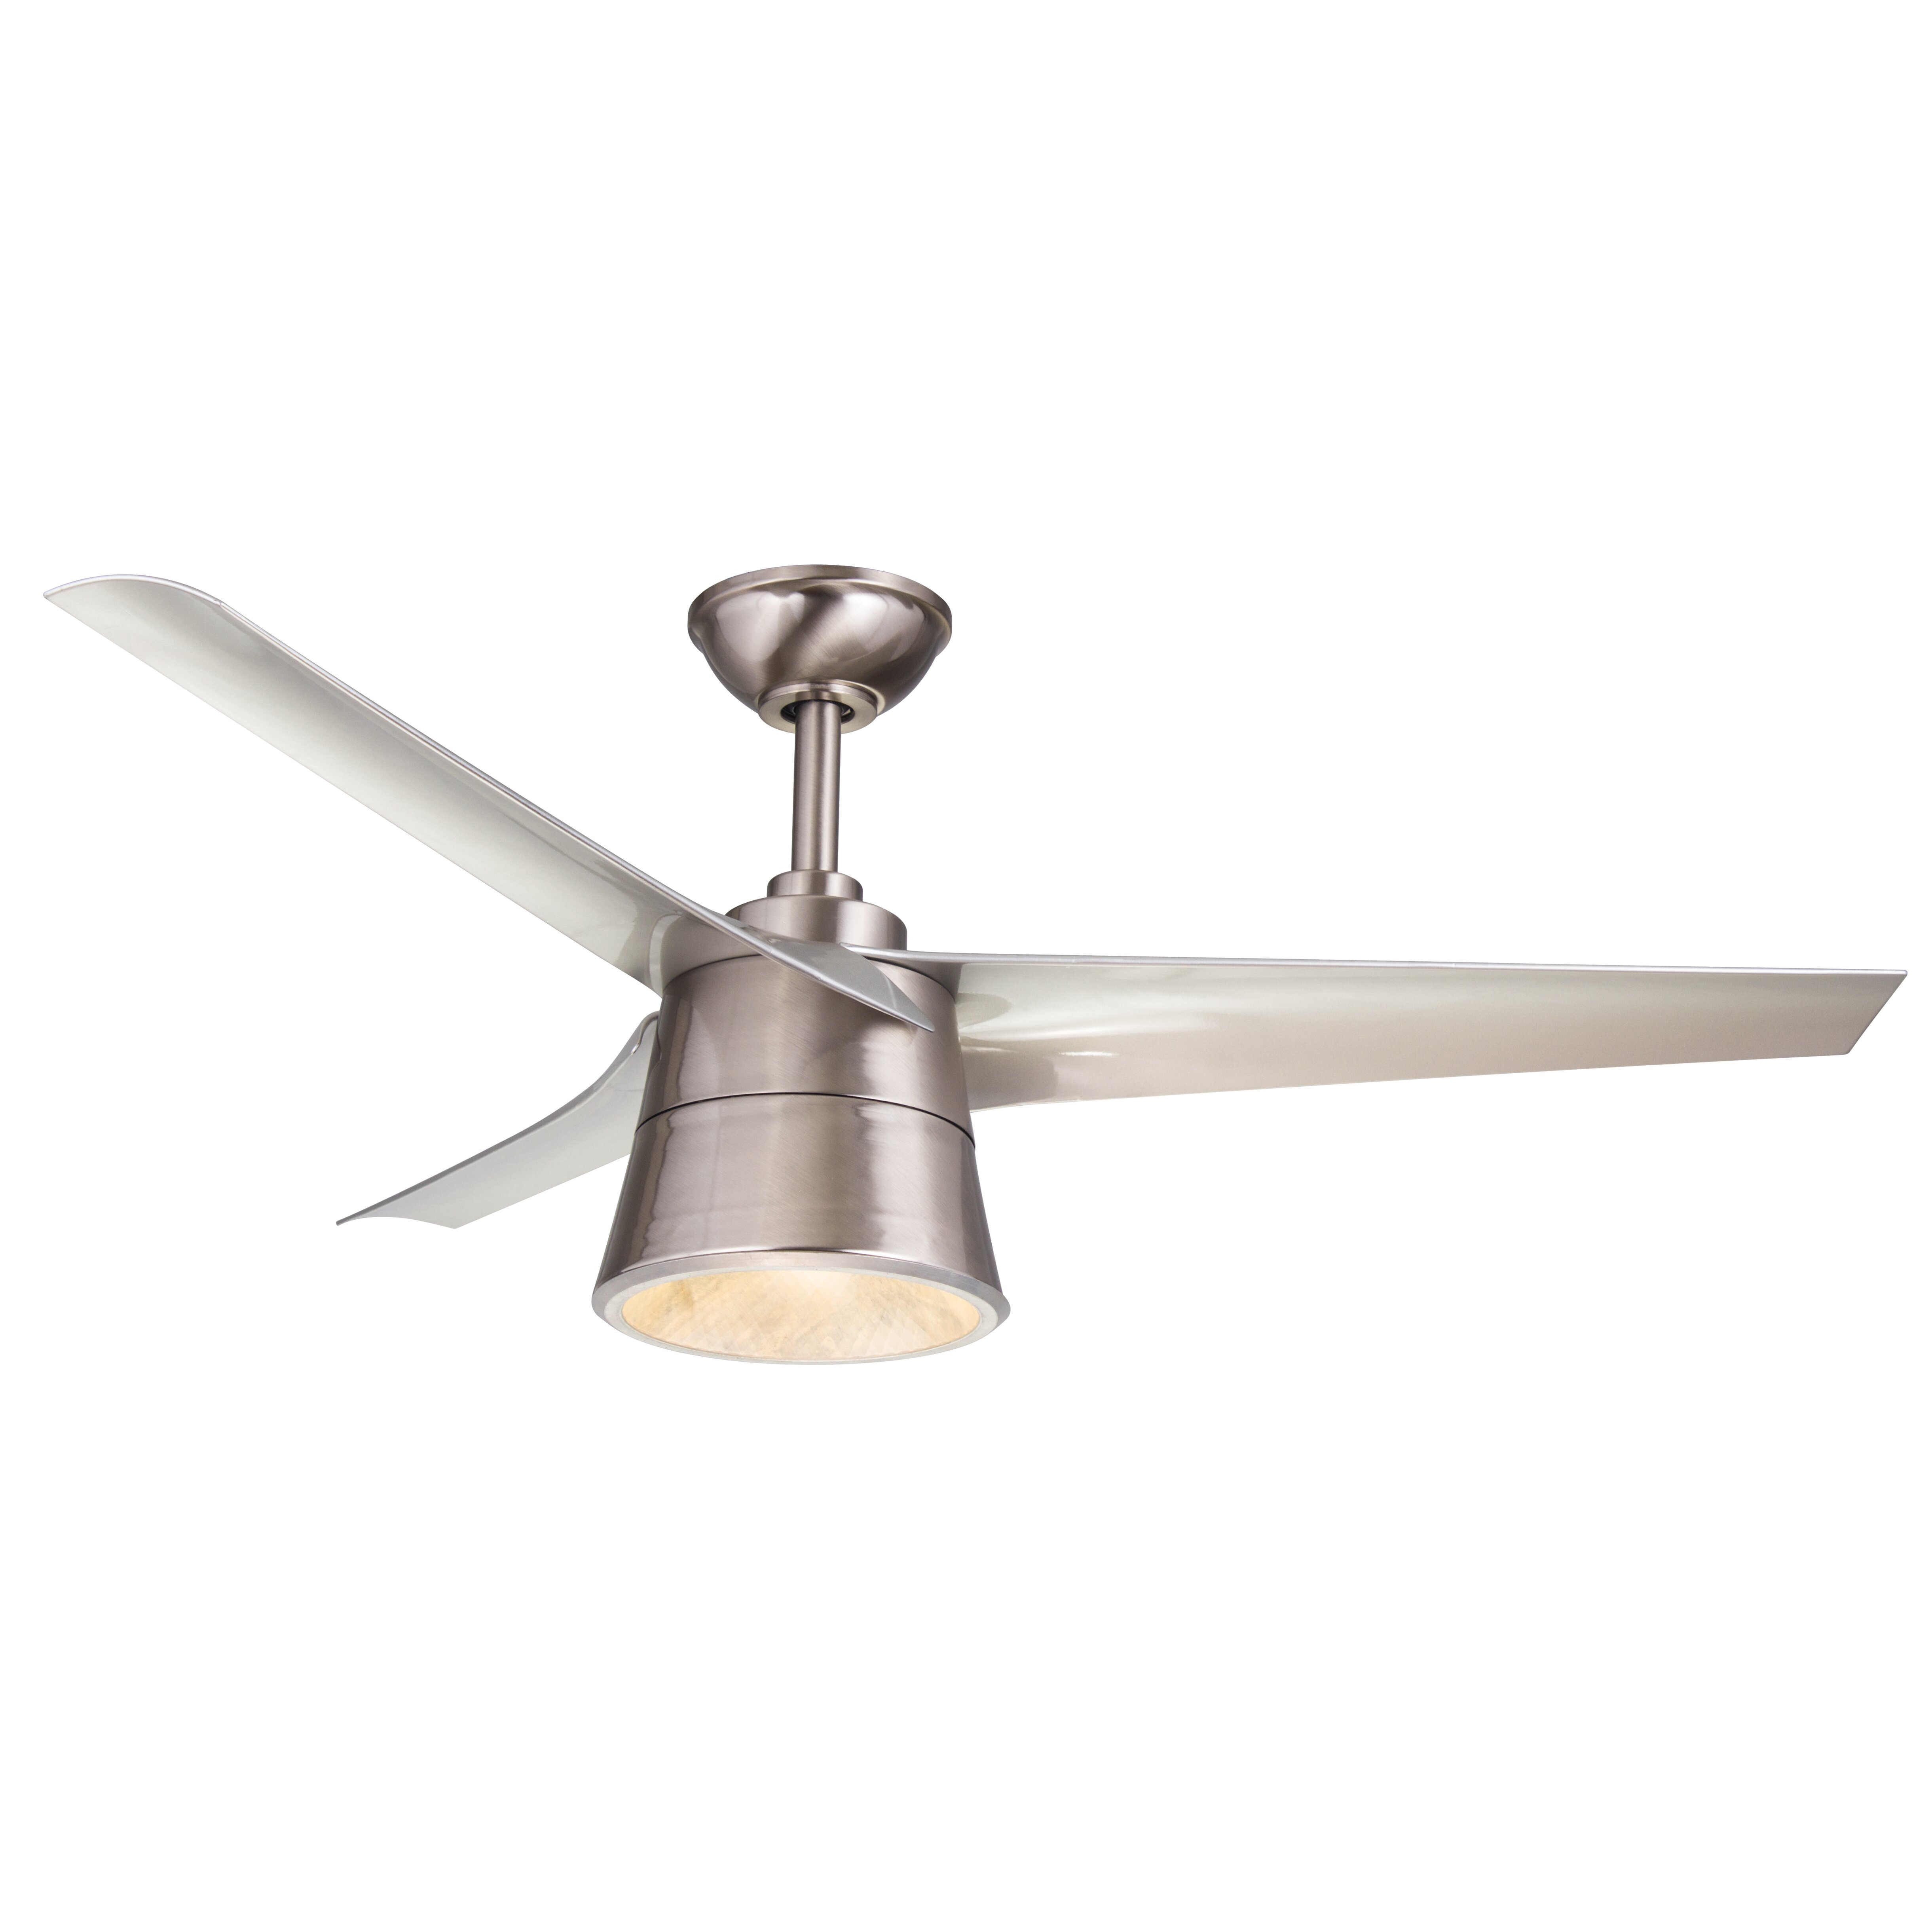 inch finish overstock shipping free hunter metal douglas with ceiling product blades white home garden low today and profile fan fans